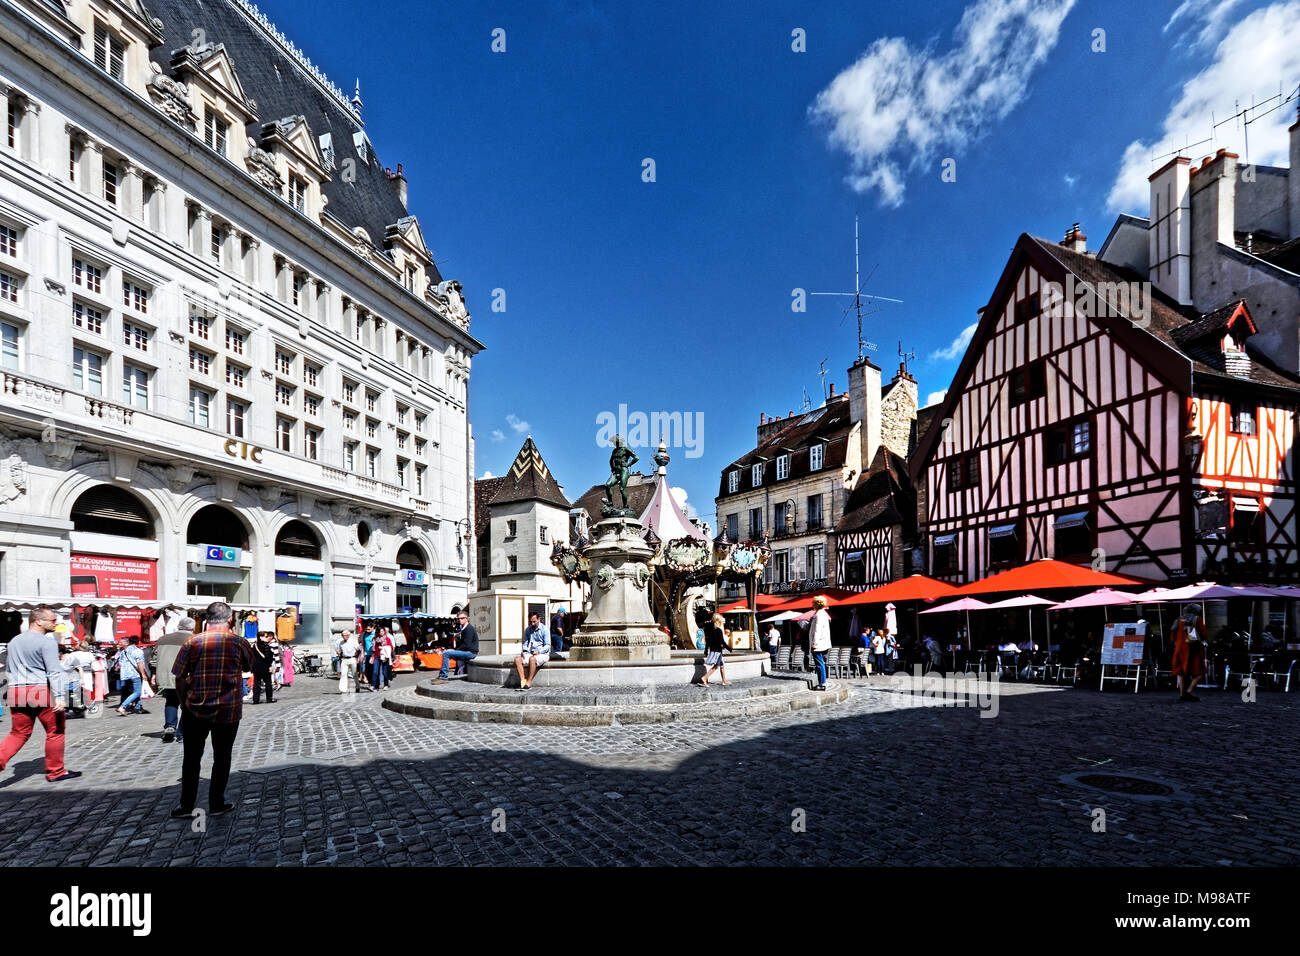 Place Francois Rude is a popular meeting place in central Dijon, Burgundy Stock Photo